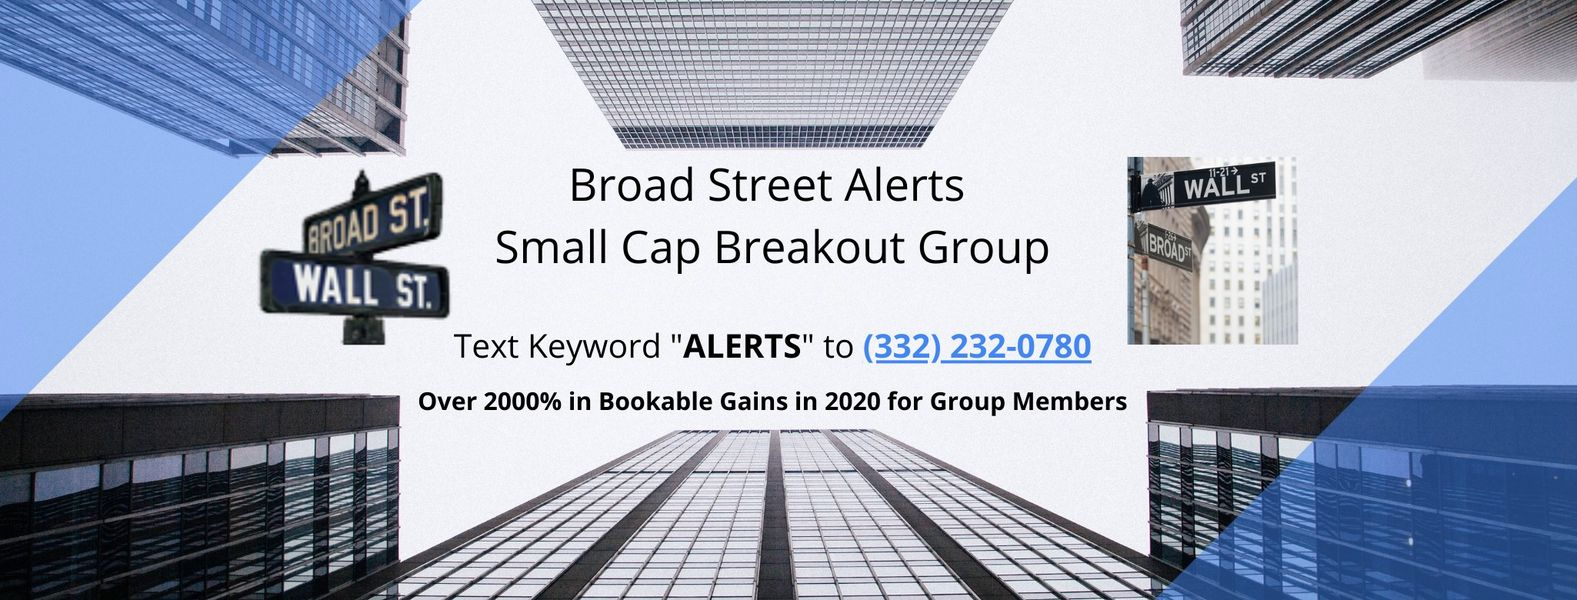 Facebook Group Small Cap Breakout Stocks